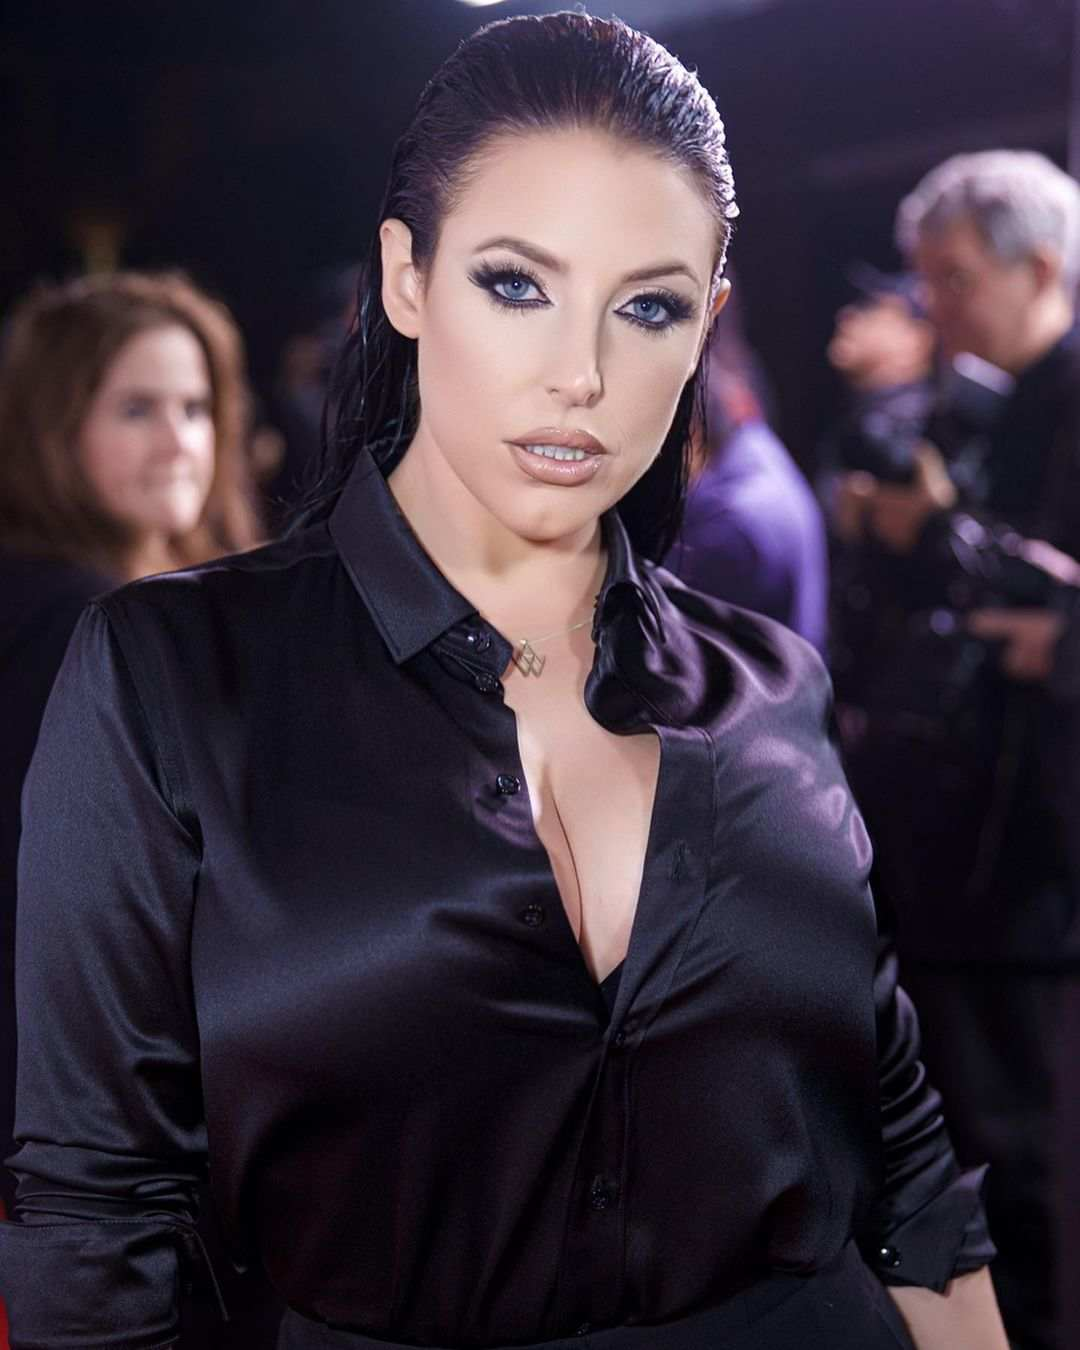 Angela White Biography, Wiki, Height, Age, Net Worth, Family